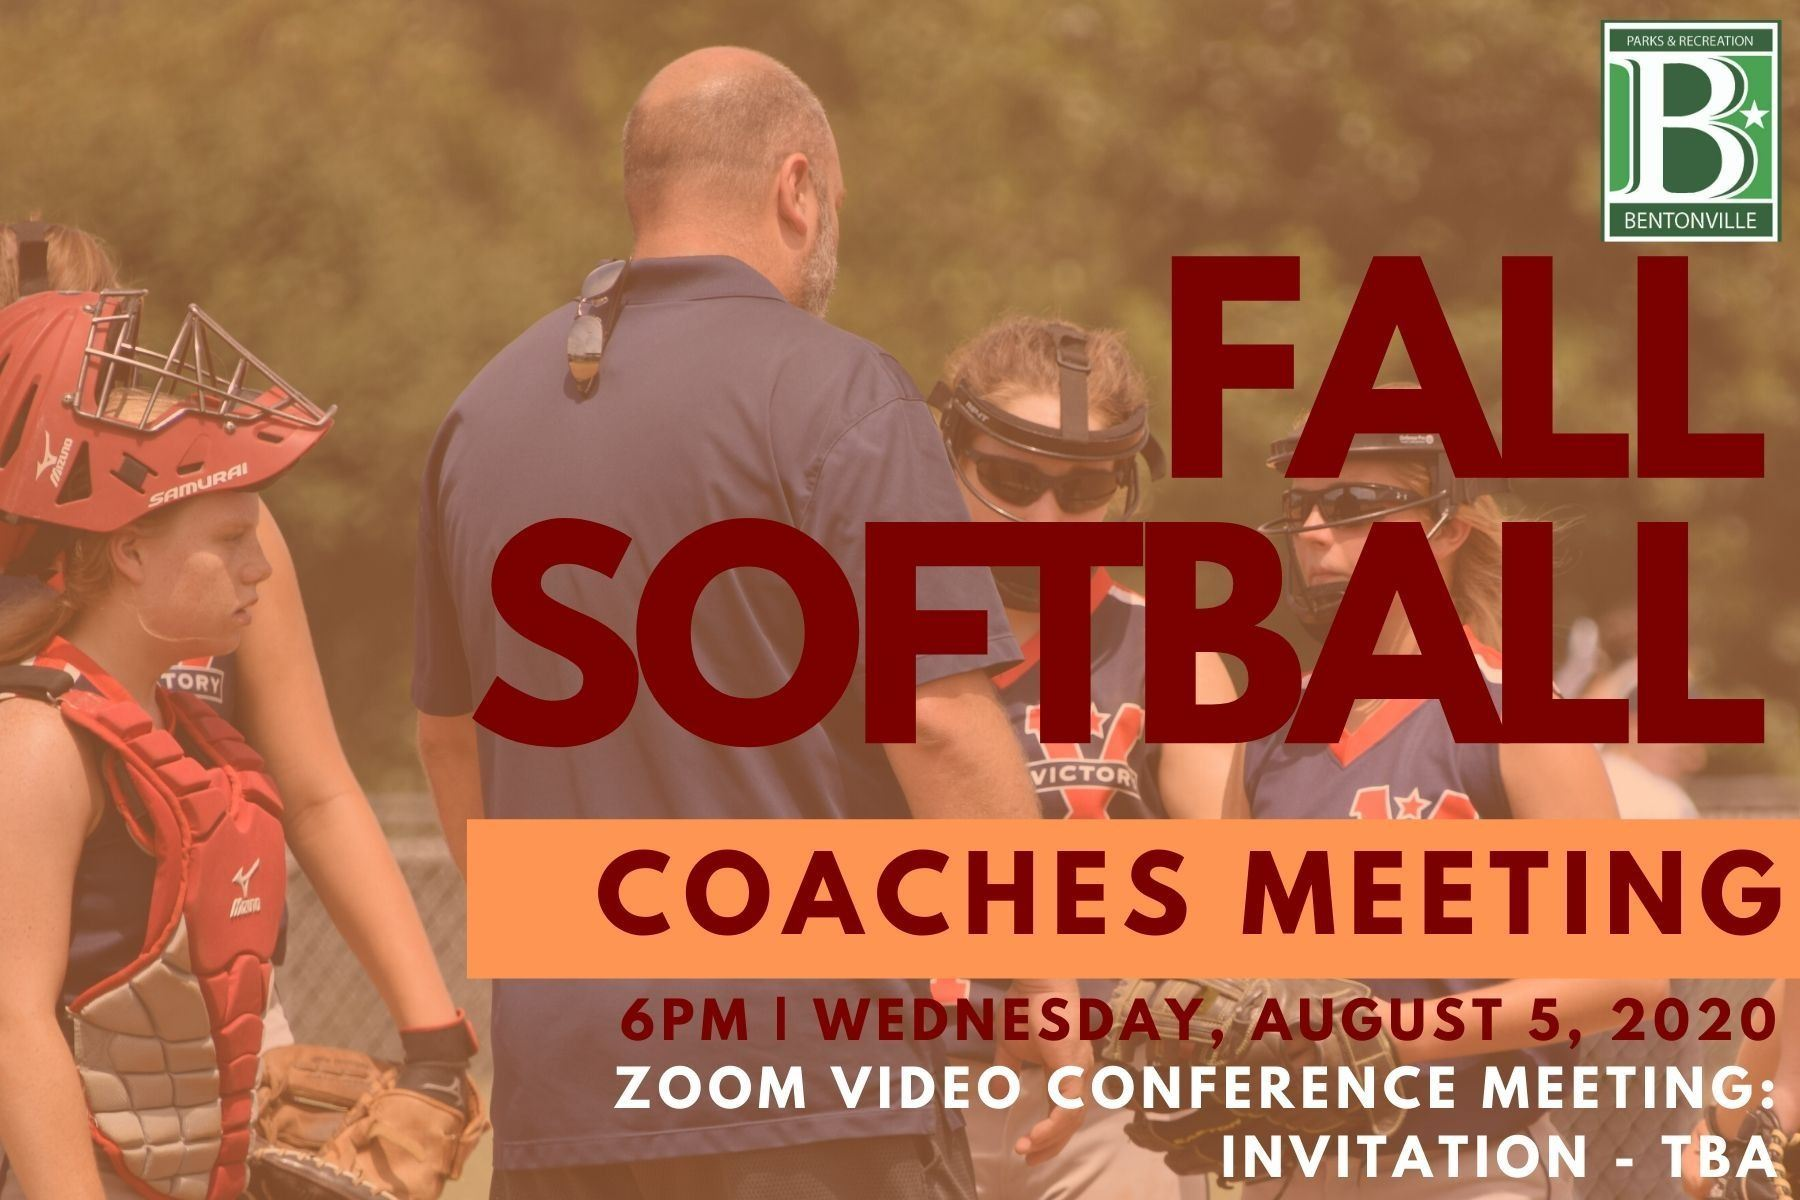 FALL 20 Softball Coaches Needed